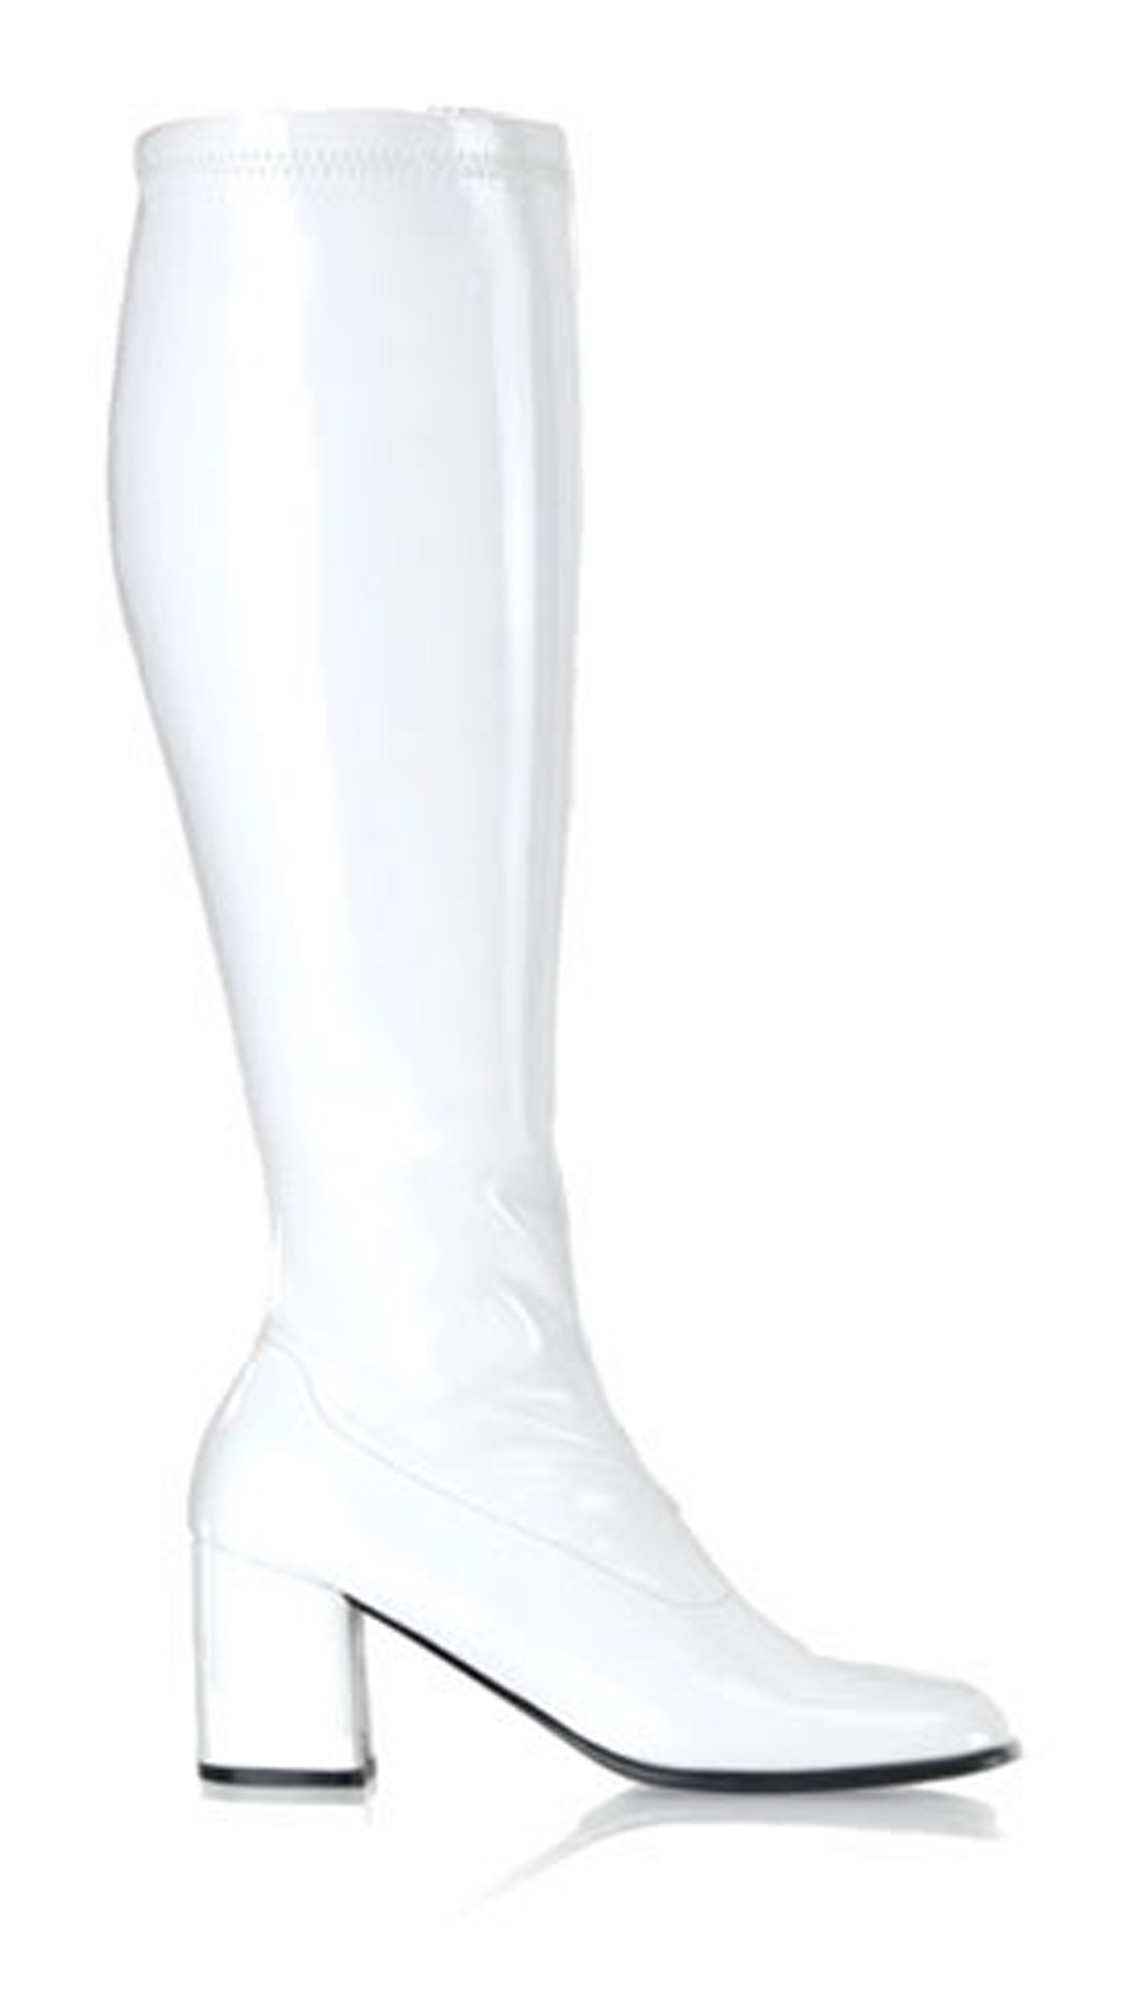 Gogo (White) Adult Boots Wide Width